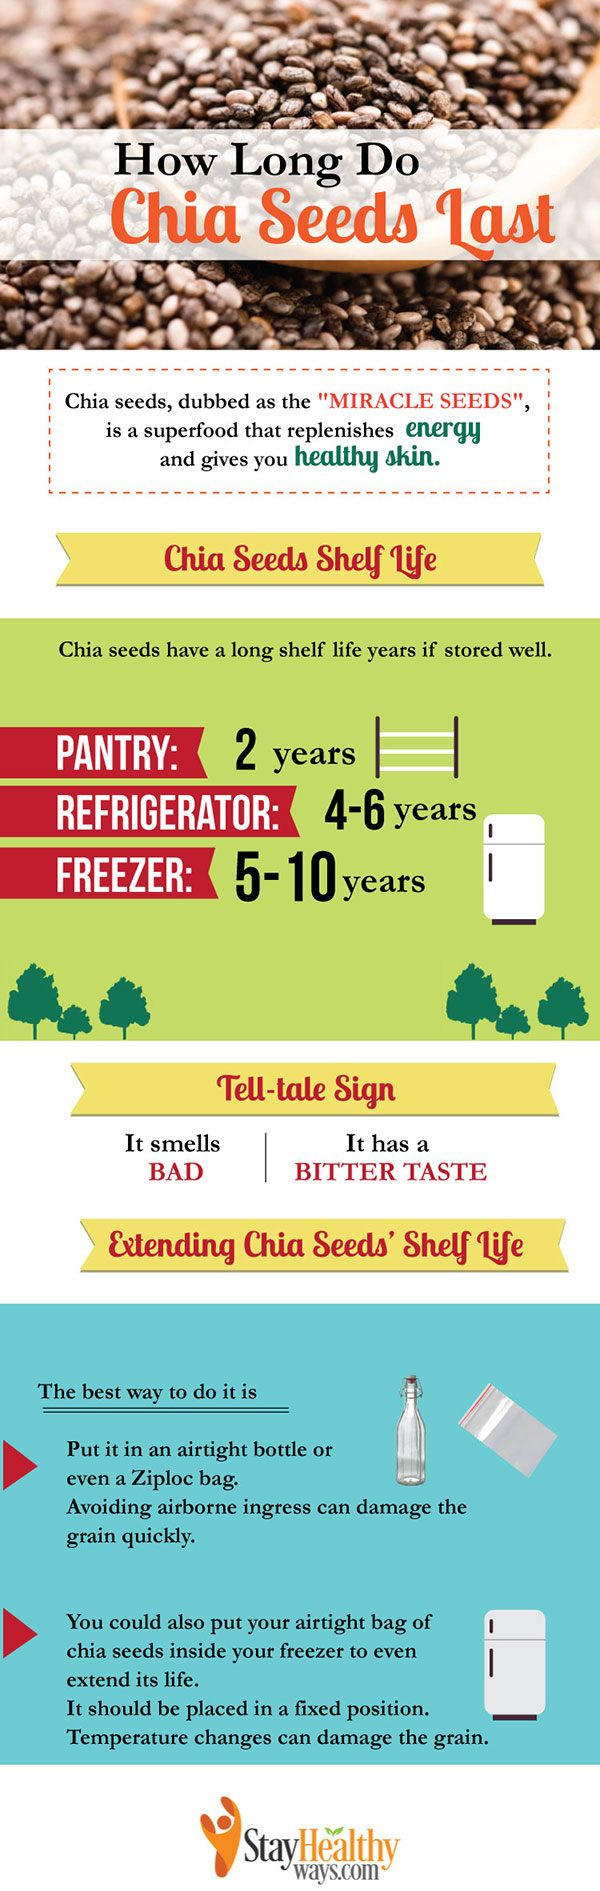 how-long do chia seeds last infographic